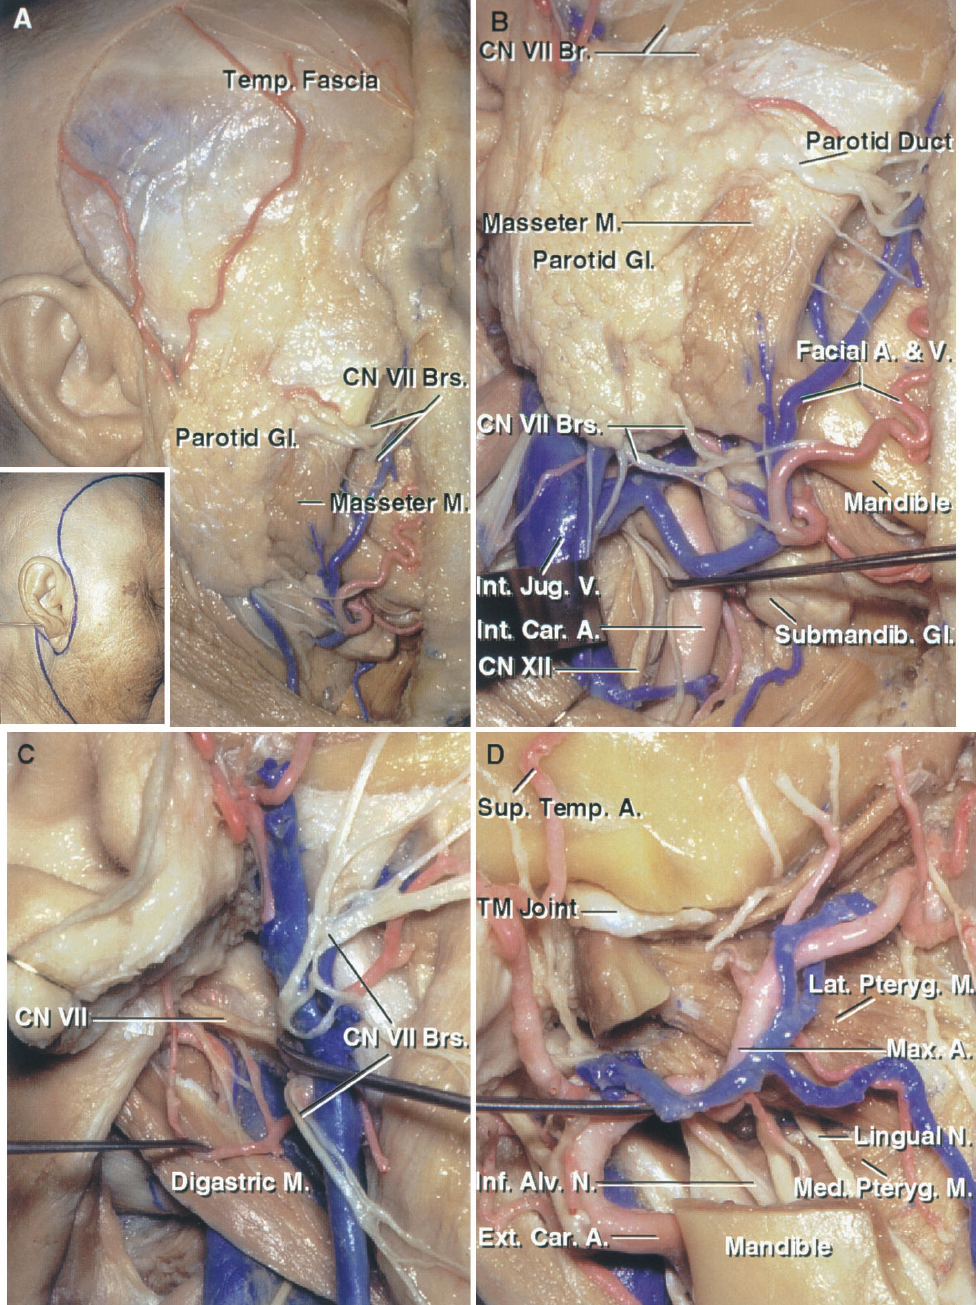 FIGURE 8.10. A–D. Preauricular subtemporal-infratemporal fossa approach. A, the scalp flap has been reflected forward. The flap is positioned so that a neck dissection as well as a frontotemporal craniotomy can be completed. The scalp flap has been reflected forward while protecting the facial nerve and its branches. The neck dissection has been completed below the parotid gland. The facial nerve branches passing deep to the parotid have been preserved. B, the dissection has been carried around the parotid gland to expose the branches of the facial nerve. The internal jugular vein and internal carotid artery are exposed below the gland. C, the parotid gland has been removed to expose the branches of the facial nerve distal to the stylomastoid foramen. D, a segment of the mandibular ramus has been removed, leaving the mandibular condyle in the mandibular fossa, to expose the maxillary artery and pterygoid muscles in the infratemporal fossa. Branches of the third trigeminal division pass between the lateral and medial pterygoid muscles. The inferior alveolar nerve descends to enter the inferior alveolar foramen and canal.